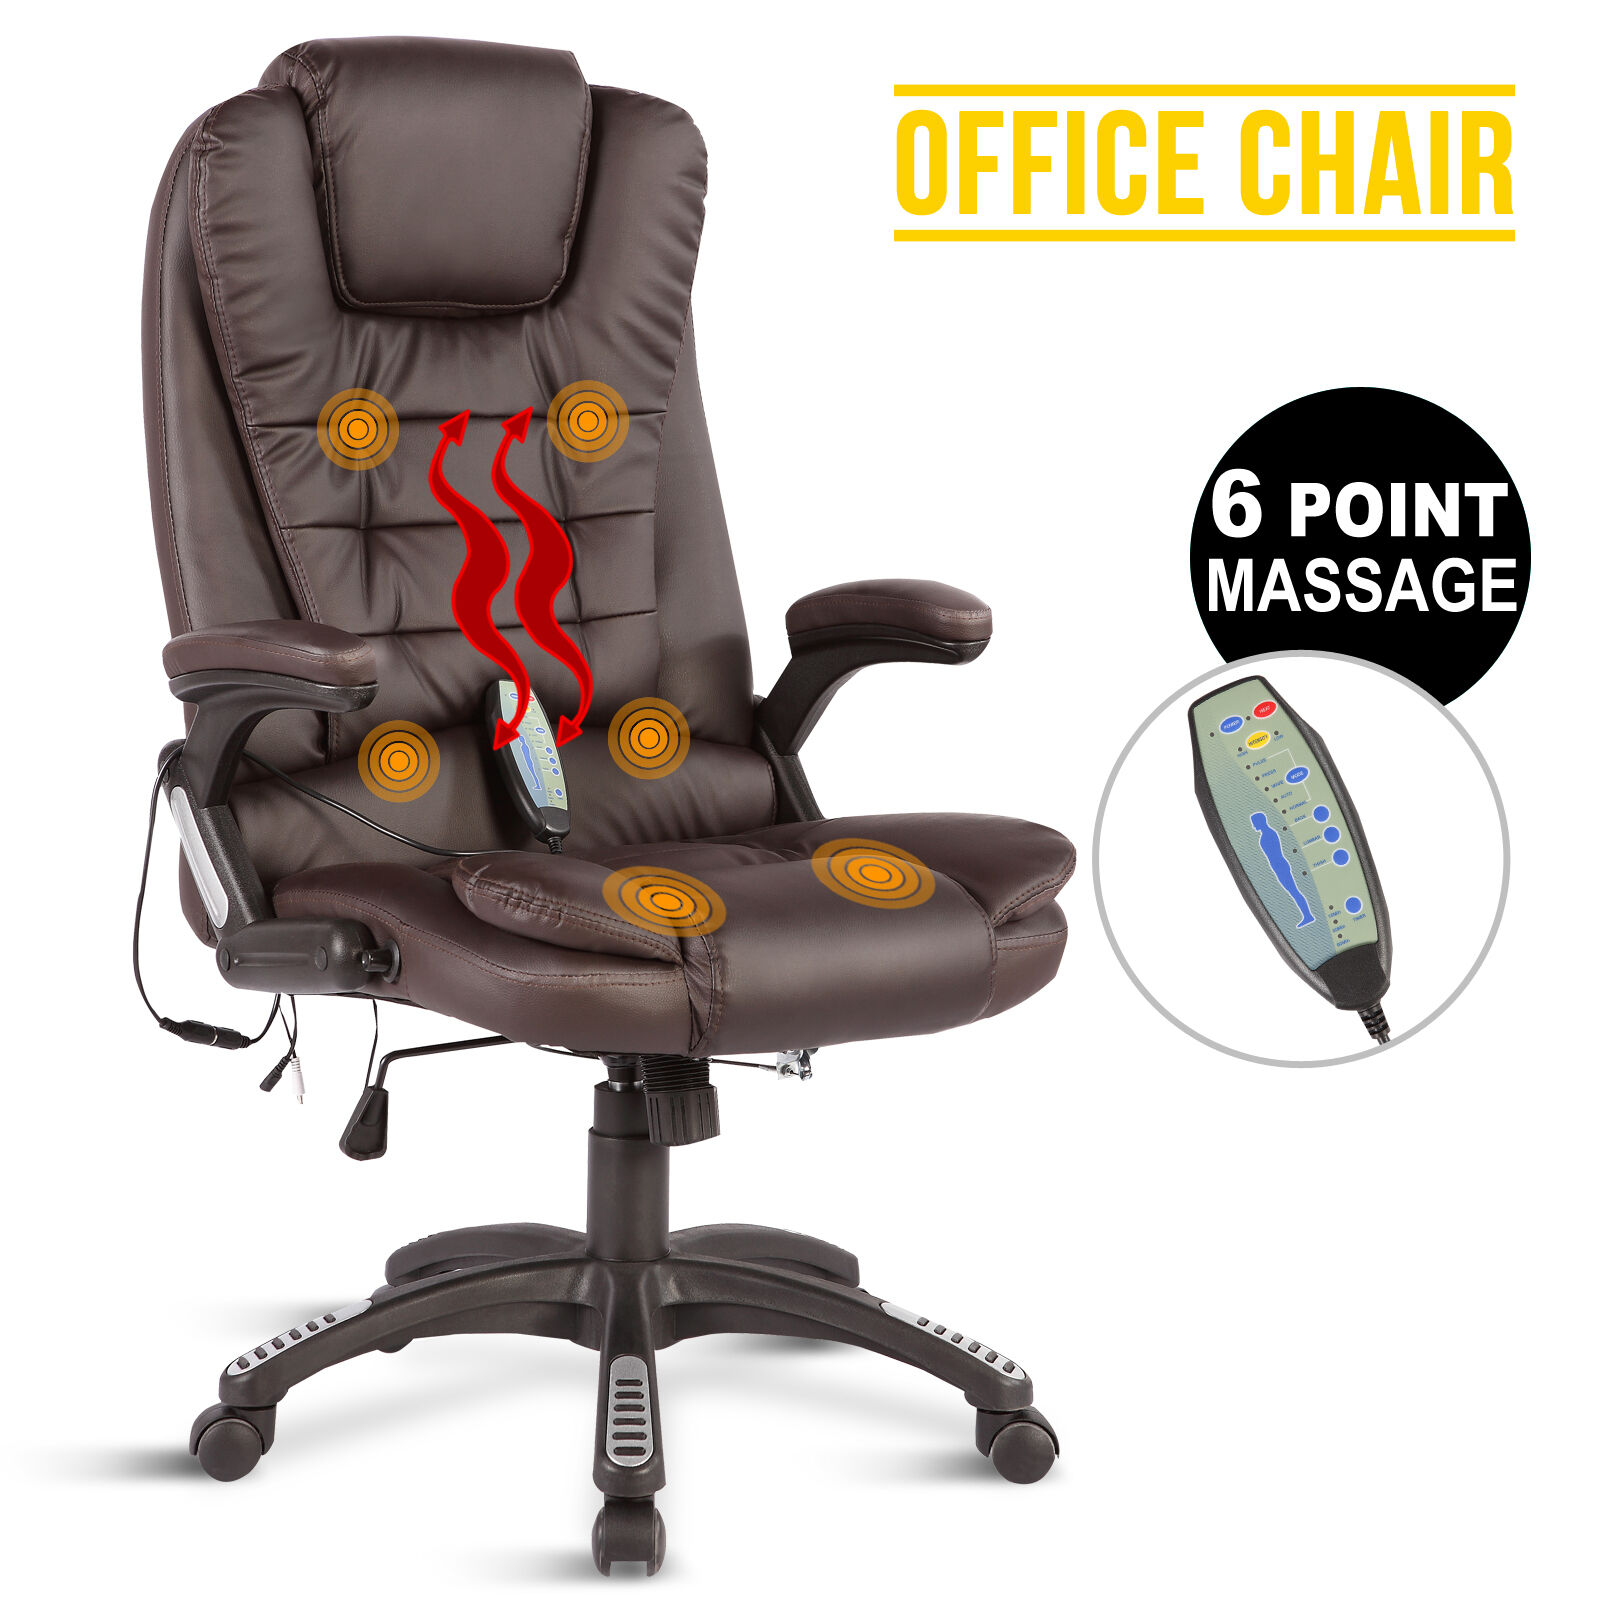 Executive Ergonomic Heated Vibrating 6 Point Massage Chair Brown